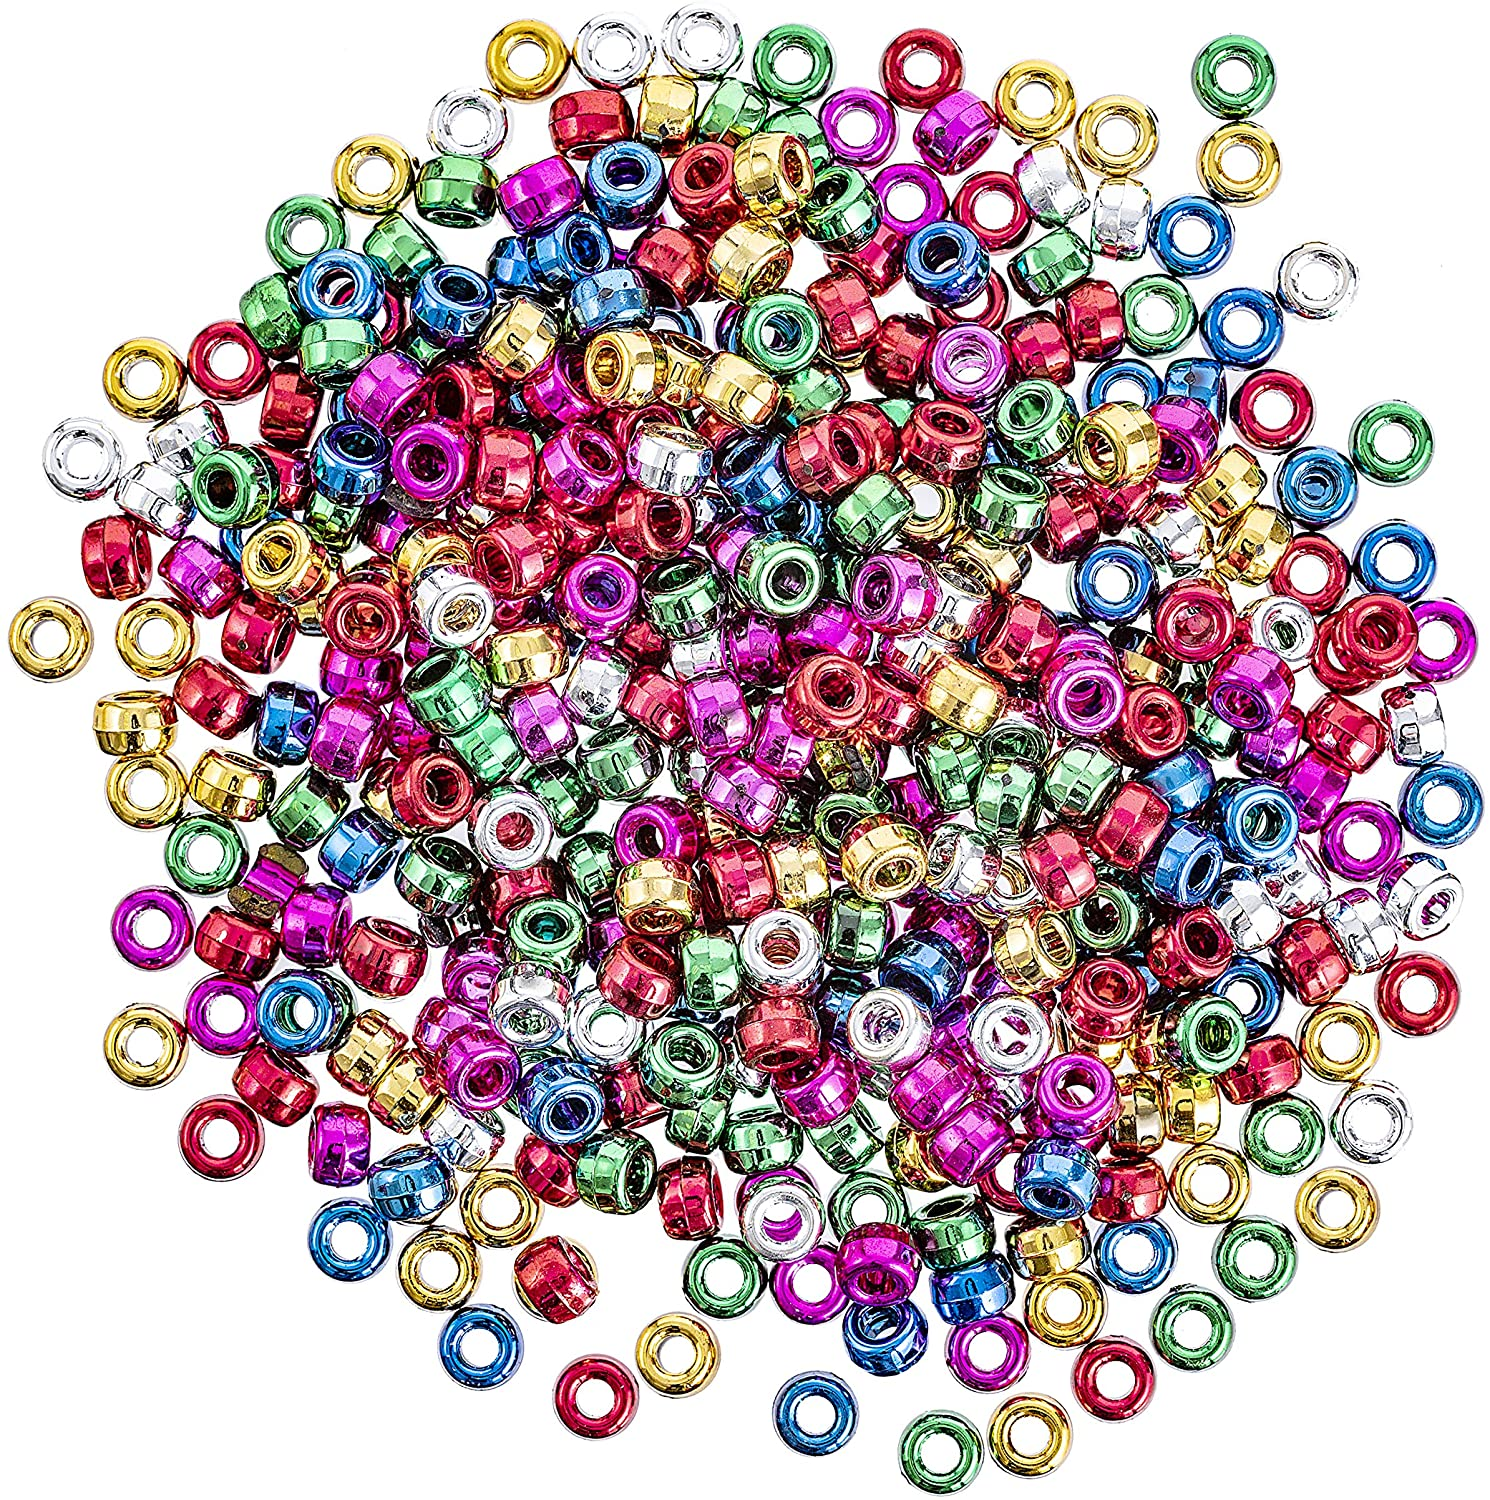 Darice 370-Piece Metallic Pony Beads, 6 by 9mm Assorted Colors (1963-35)